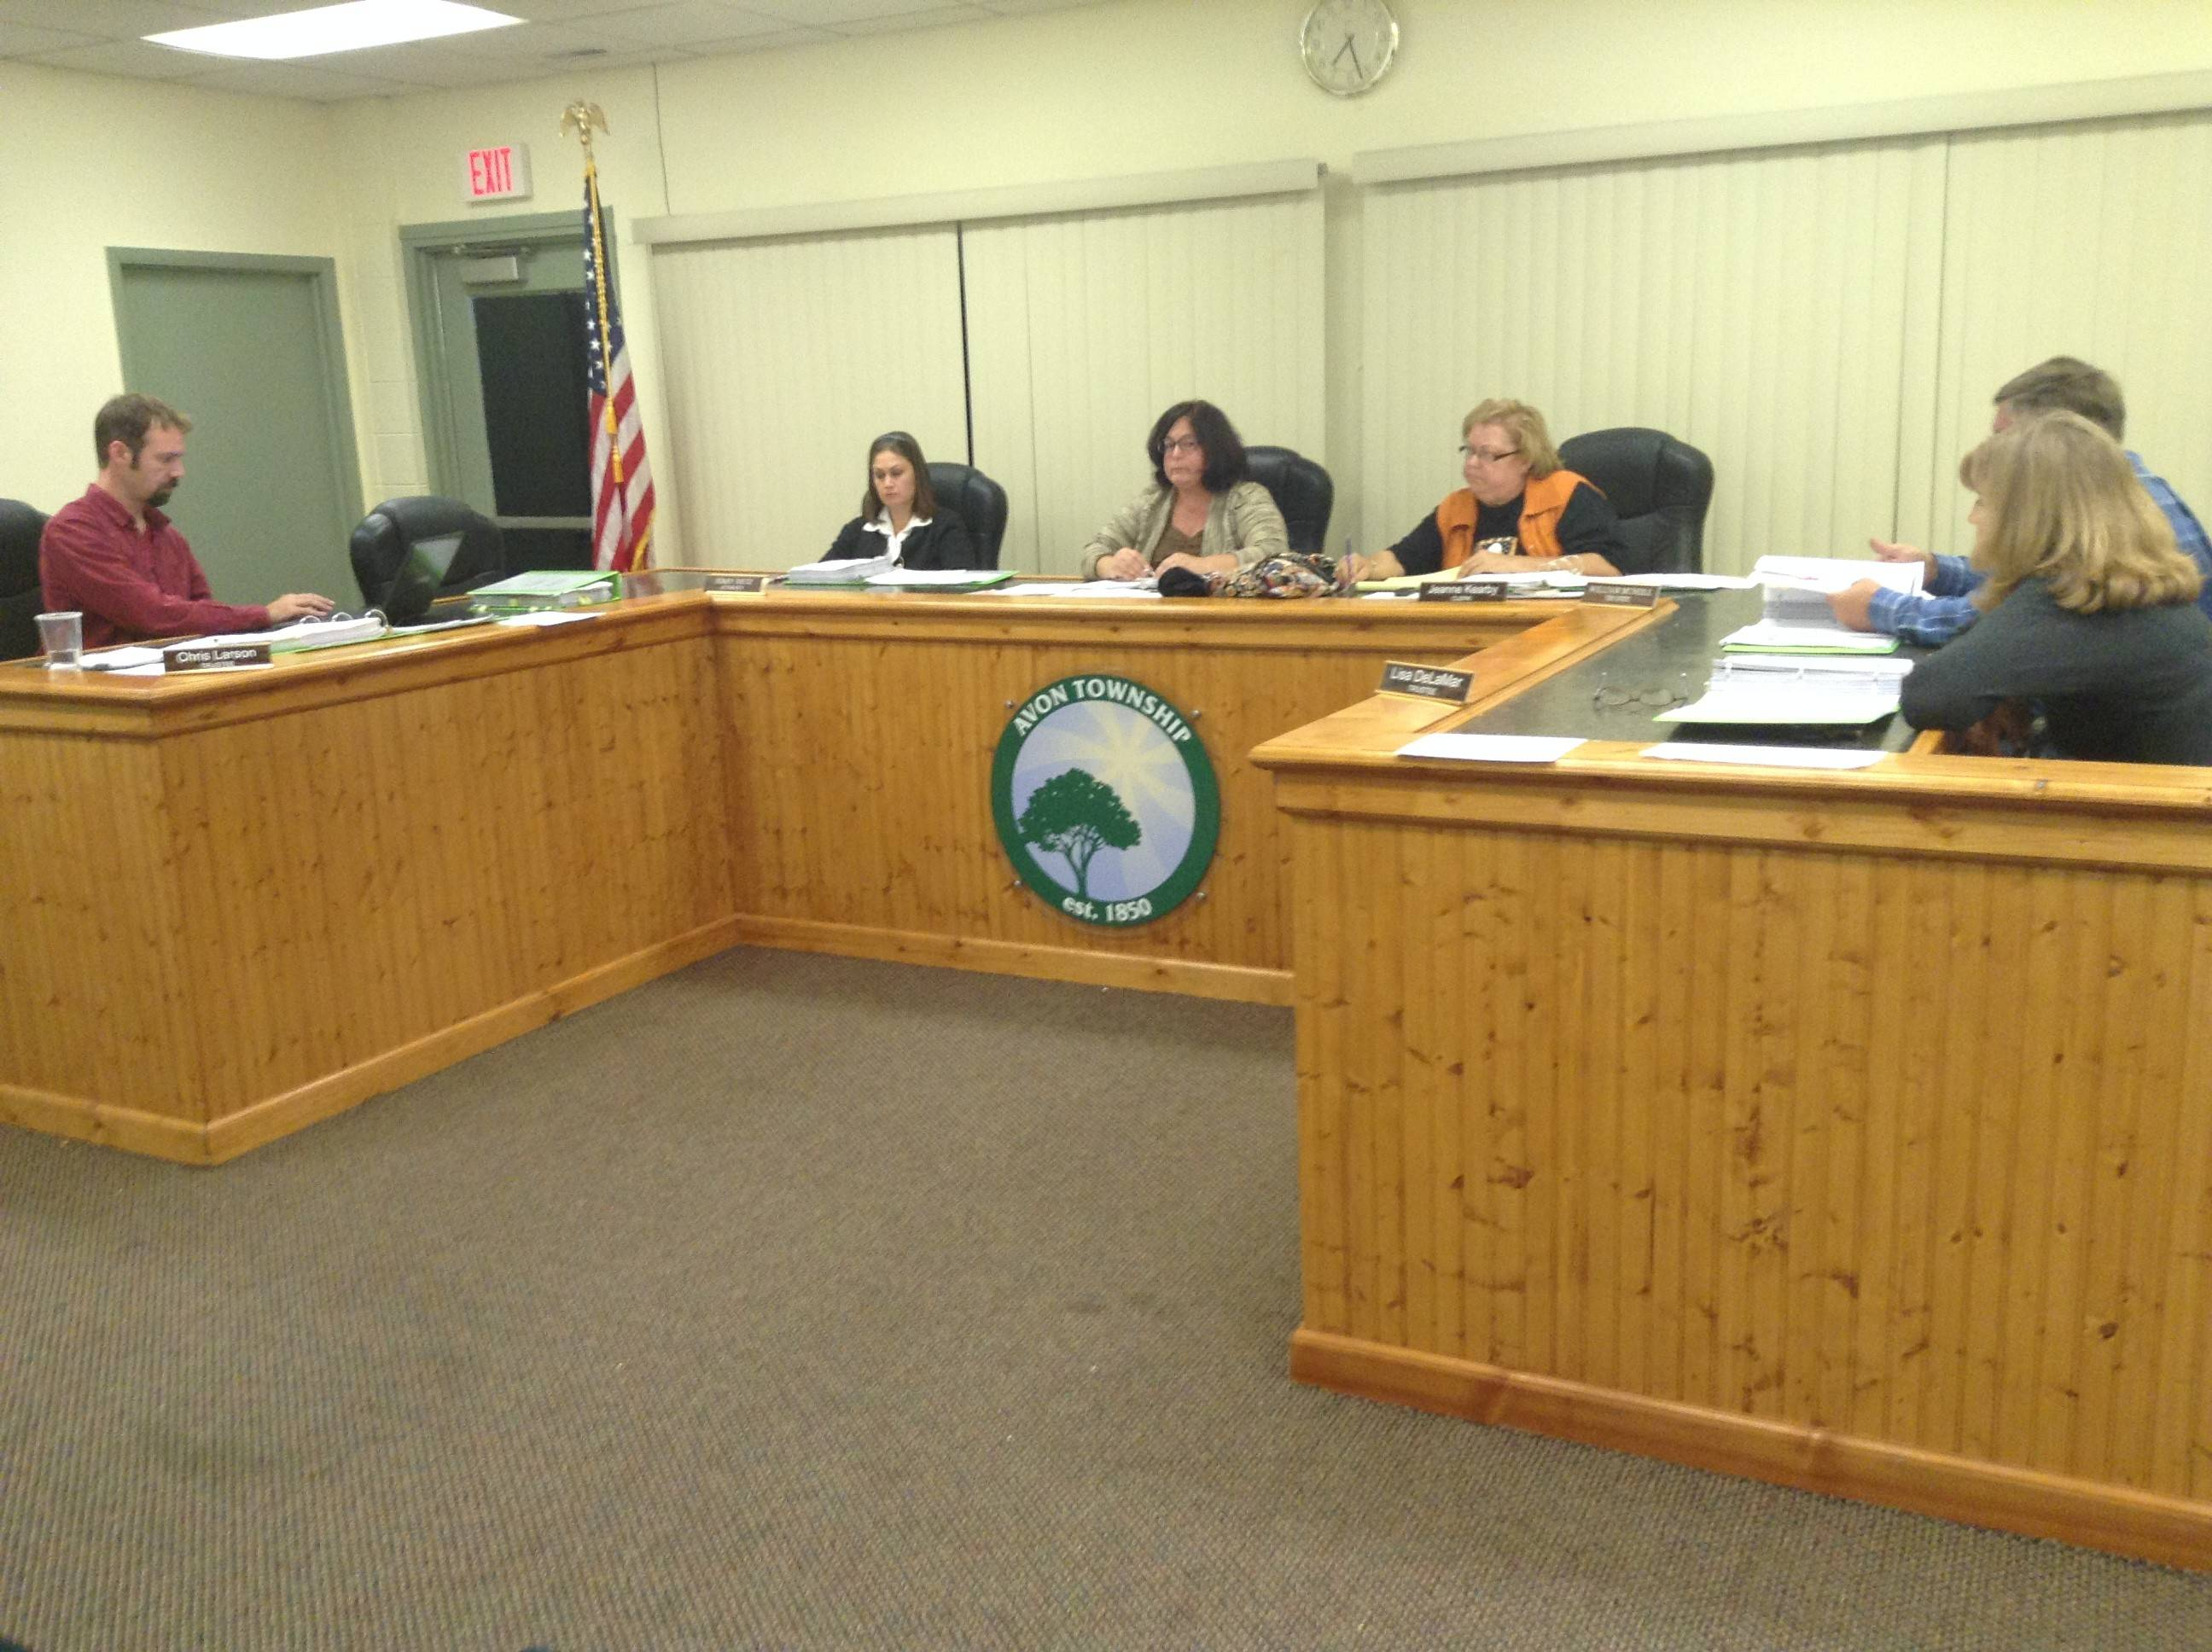 Avon Twp. supervisor: Residents upset since assessor's office closed